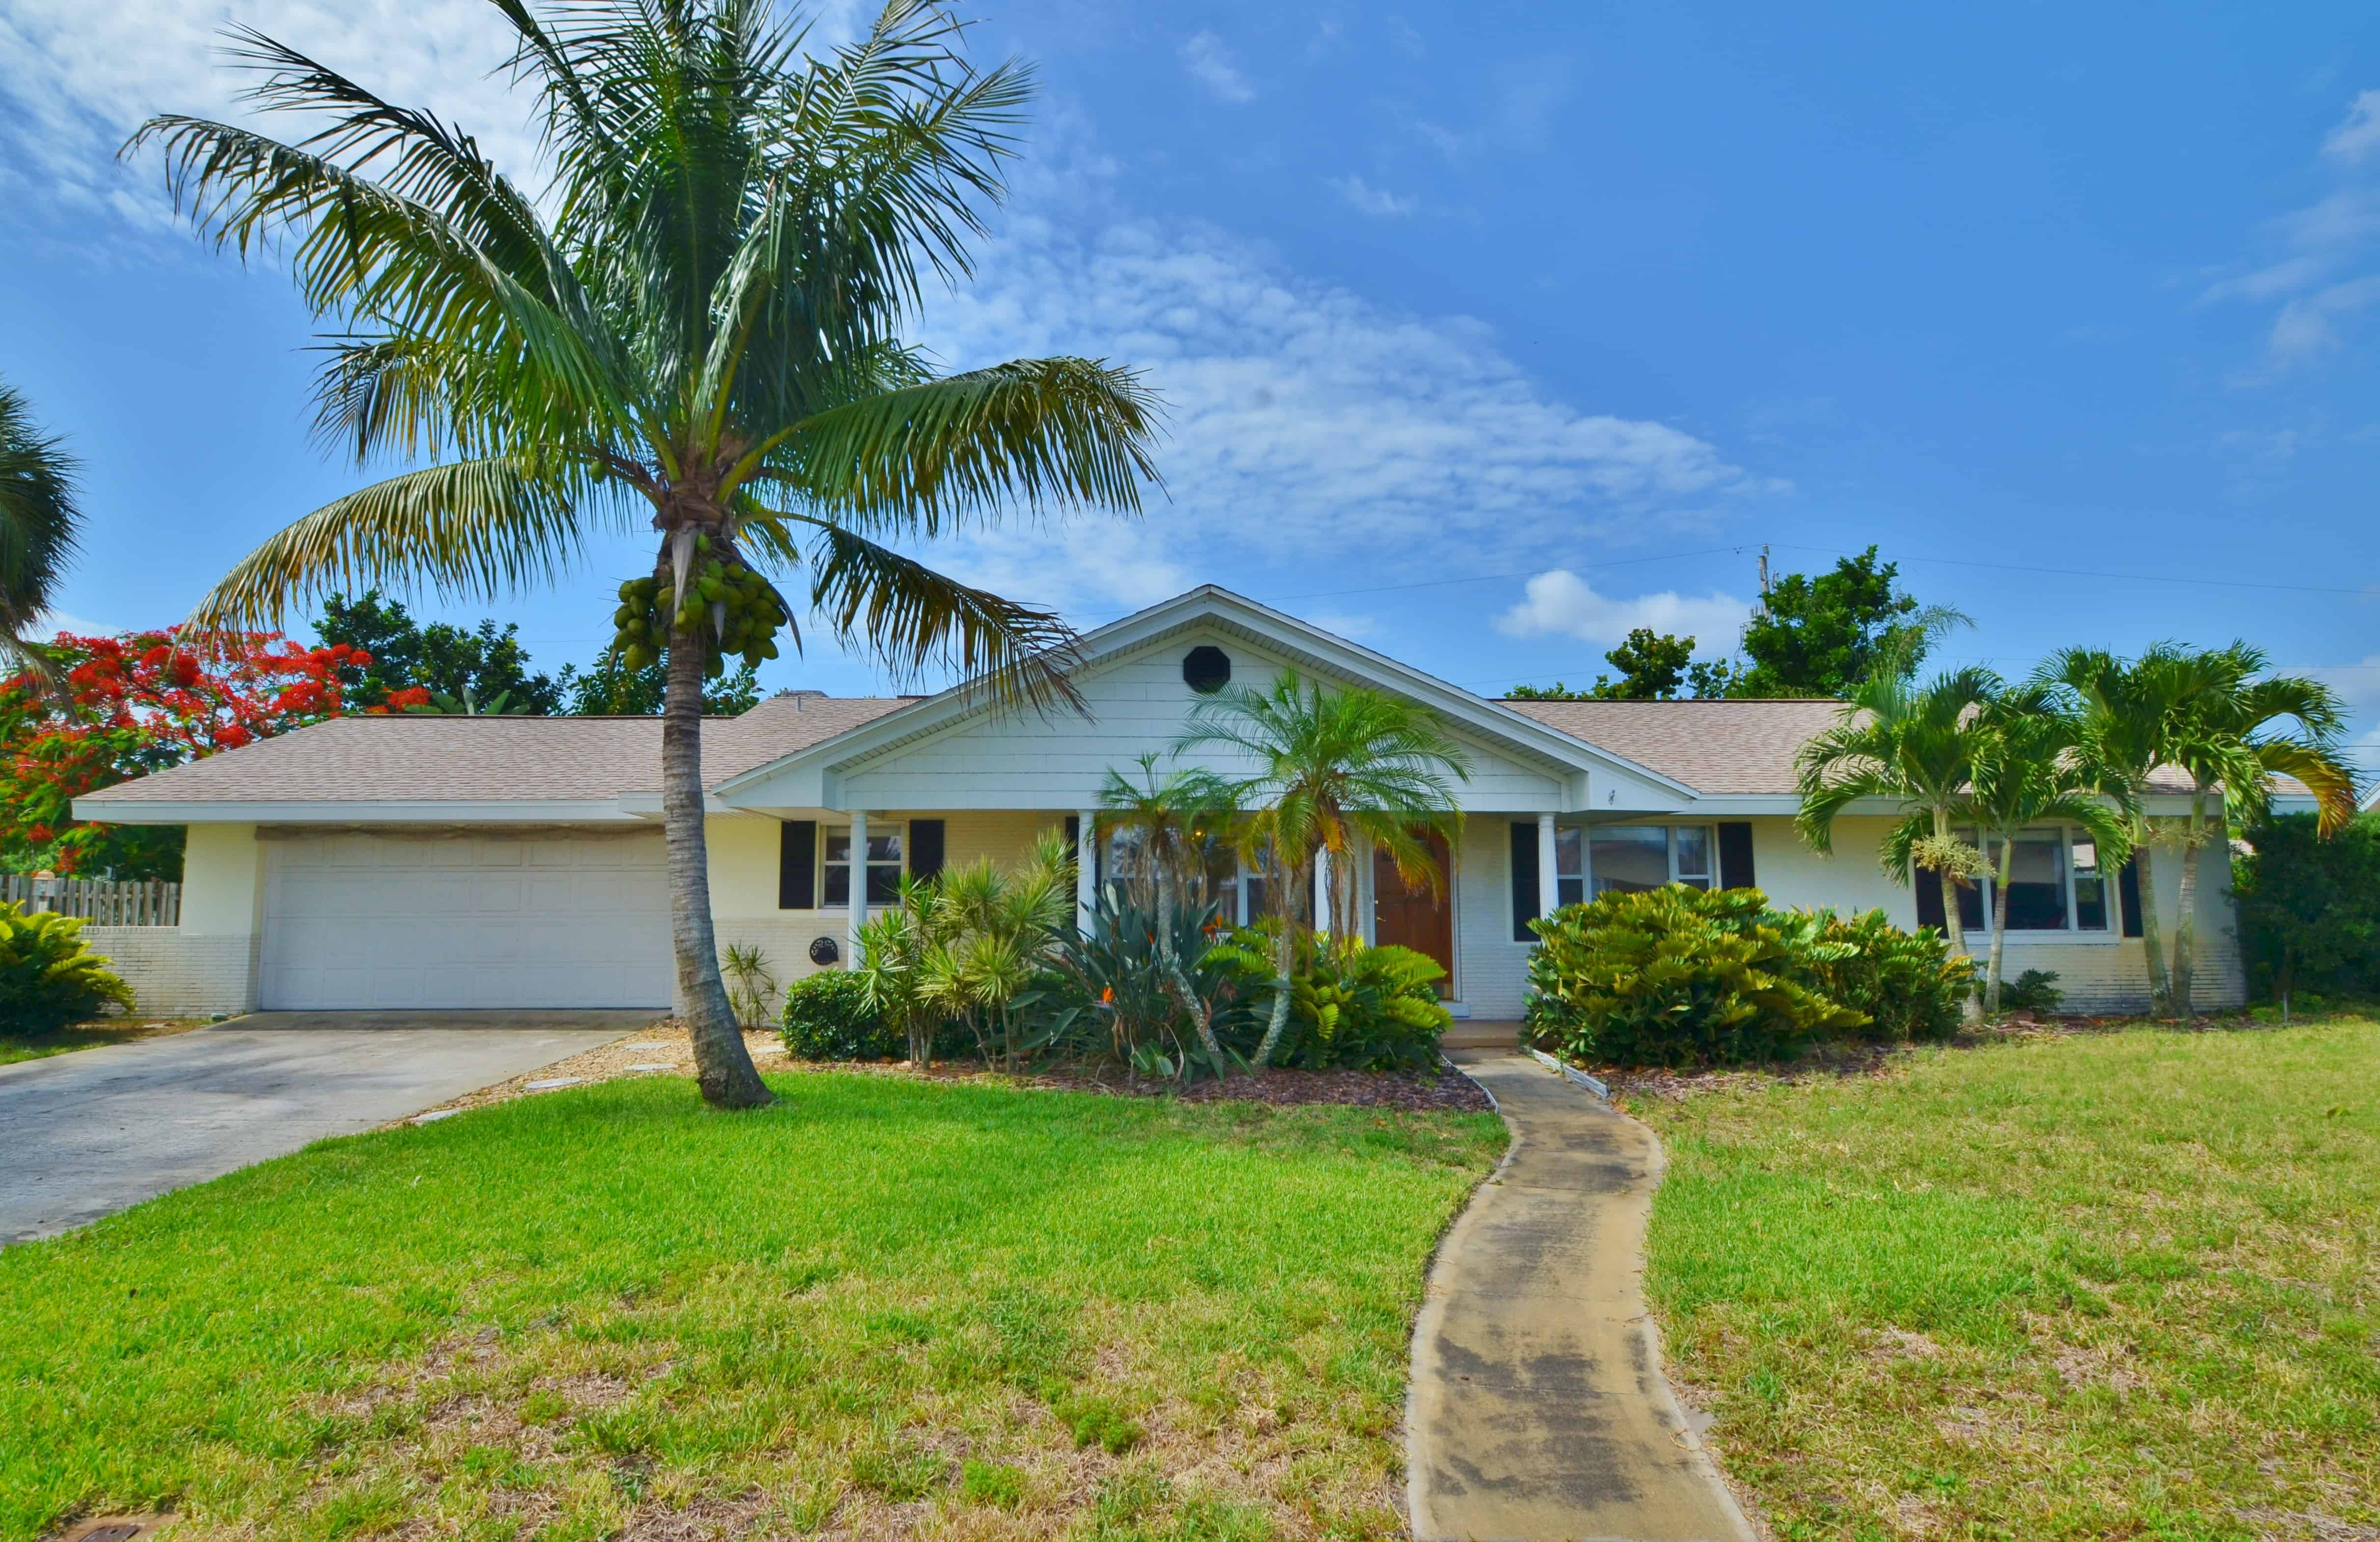 SOLD – Rio Lindo – 581 N. Sonora Circle Indialantic, FL 32903 – $210,000